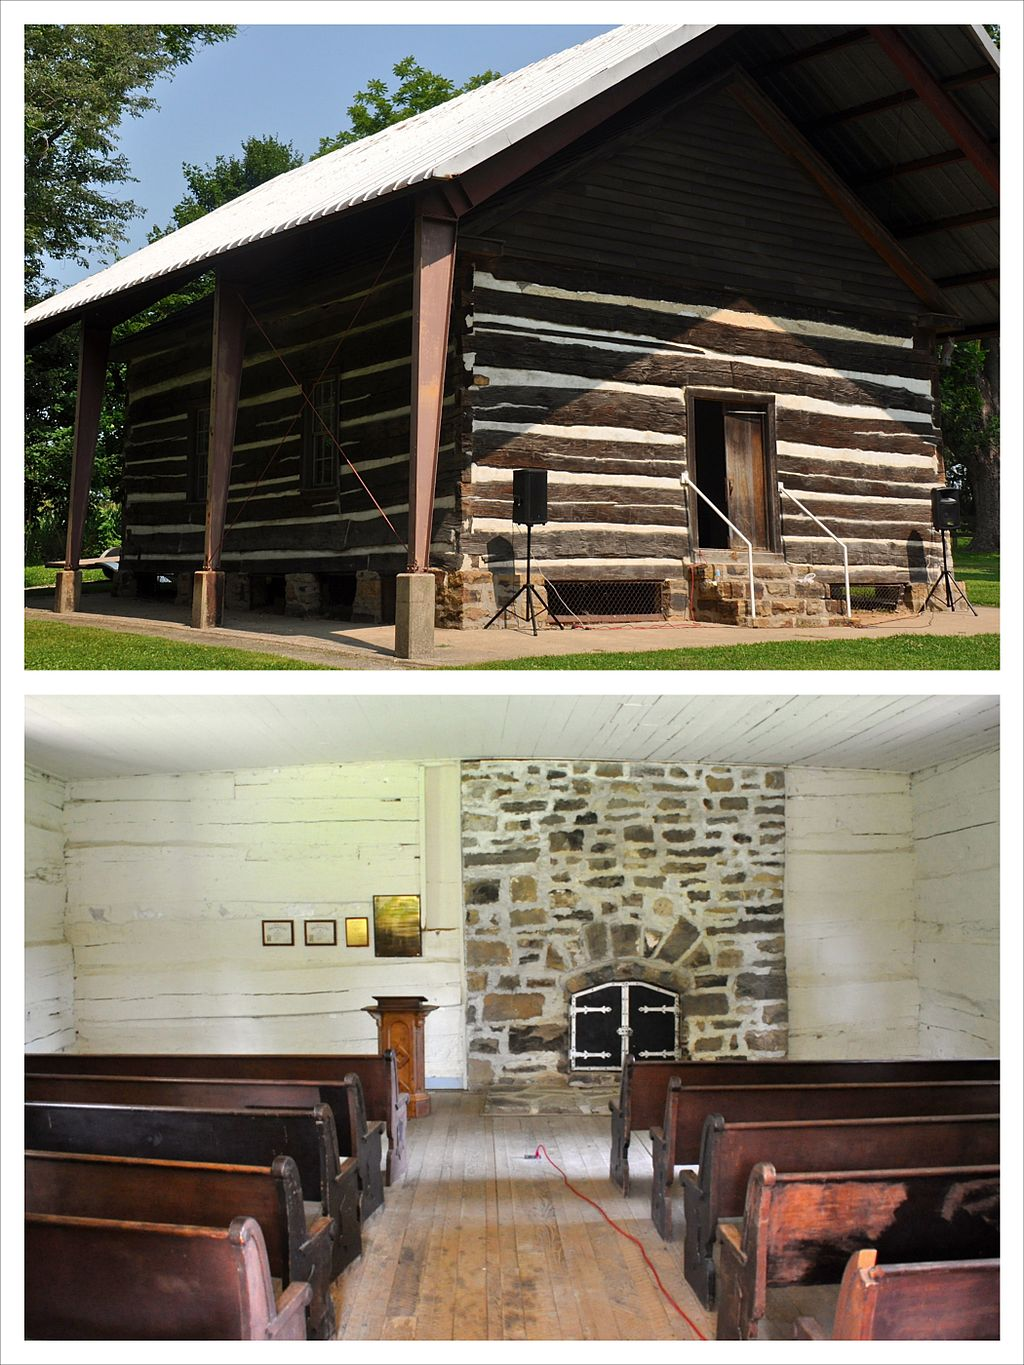 The McKendree Chapel was built in 1819 and is the oldest extant Protestant church west of the Mississippi River.